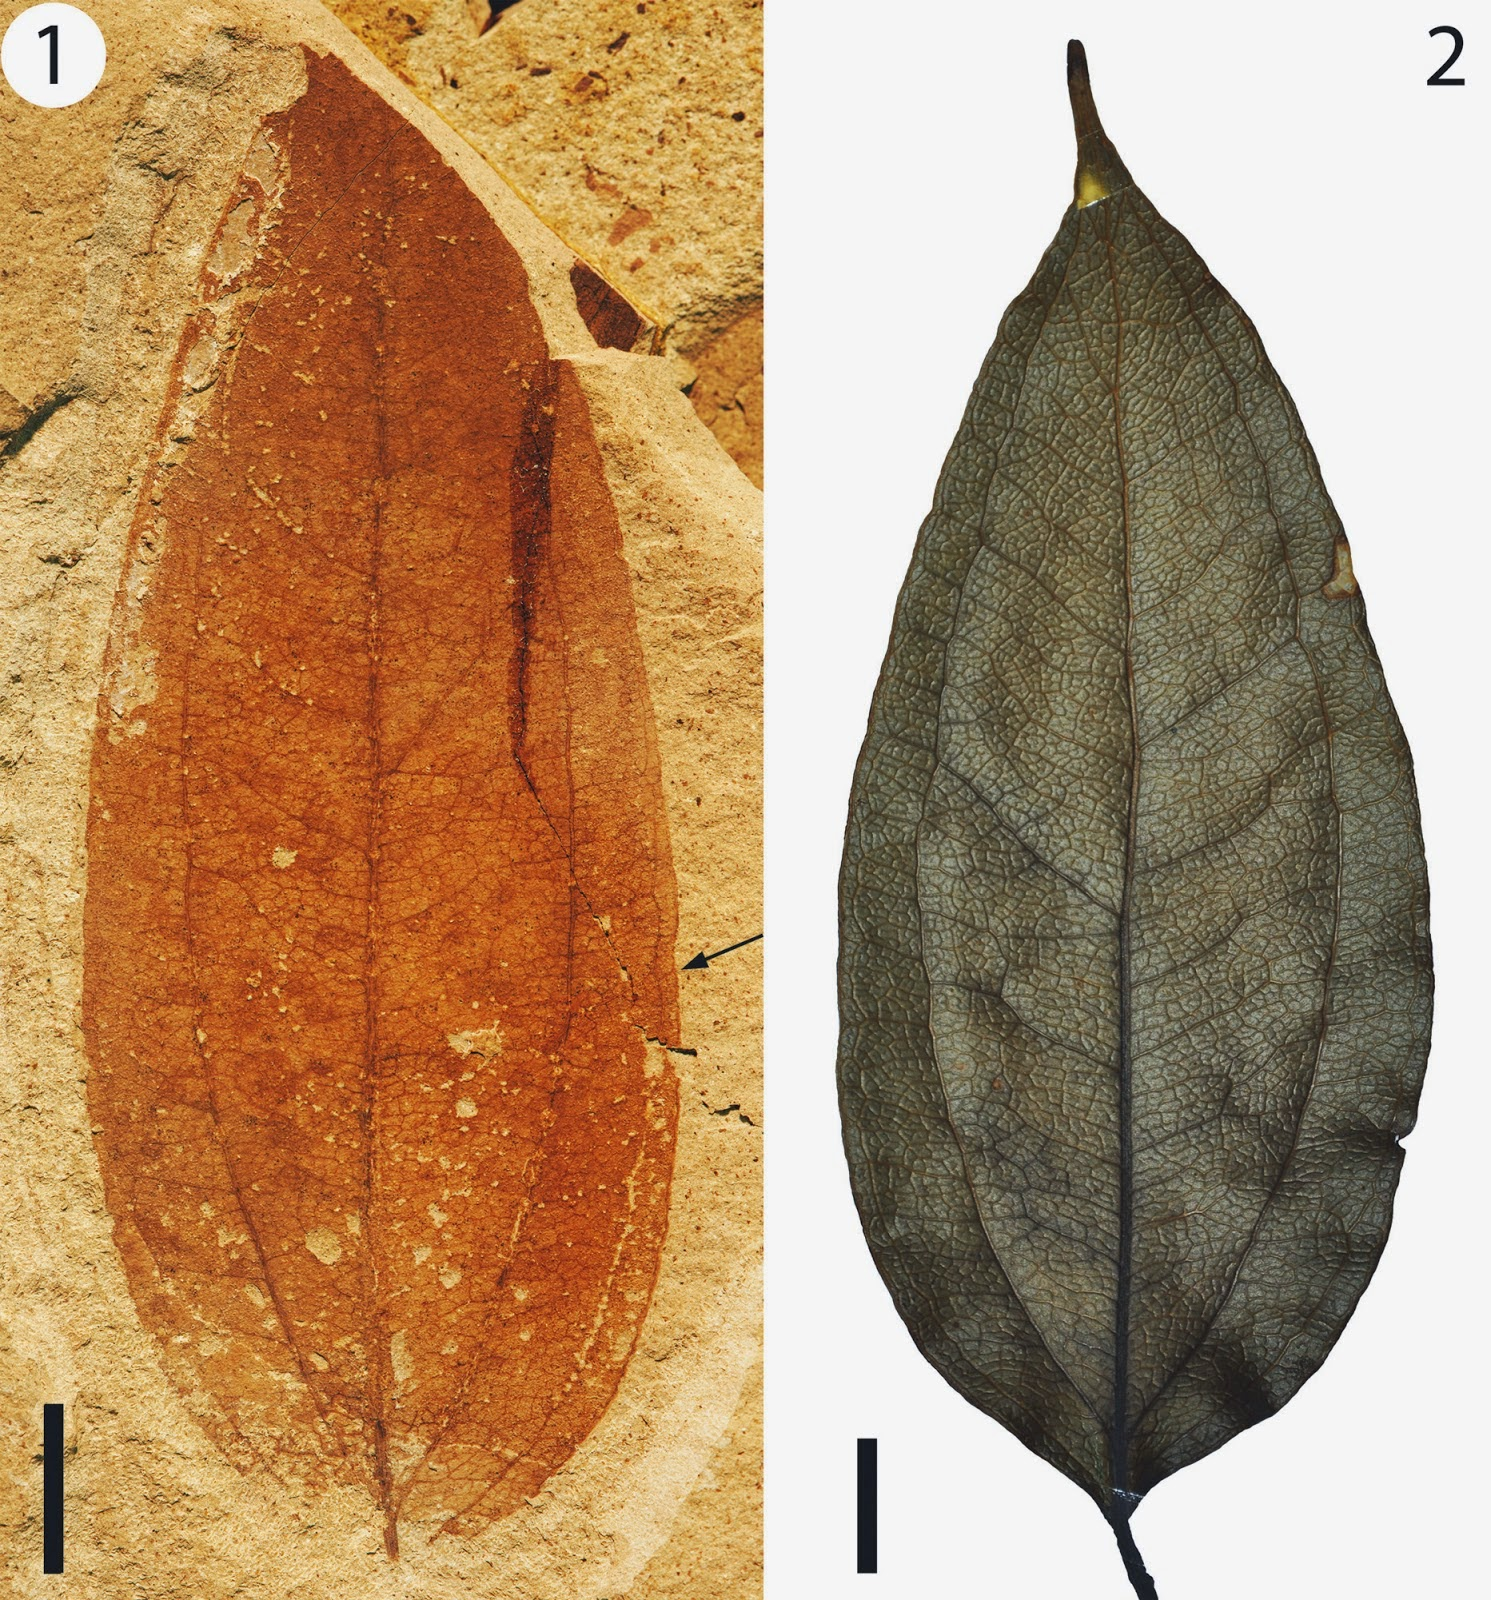 http://sciencythoughts.blogspot.co.uk/2014/11/supplejack-leaves-from-early-eocene-of.html